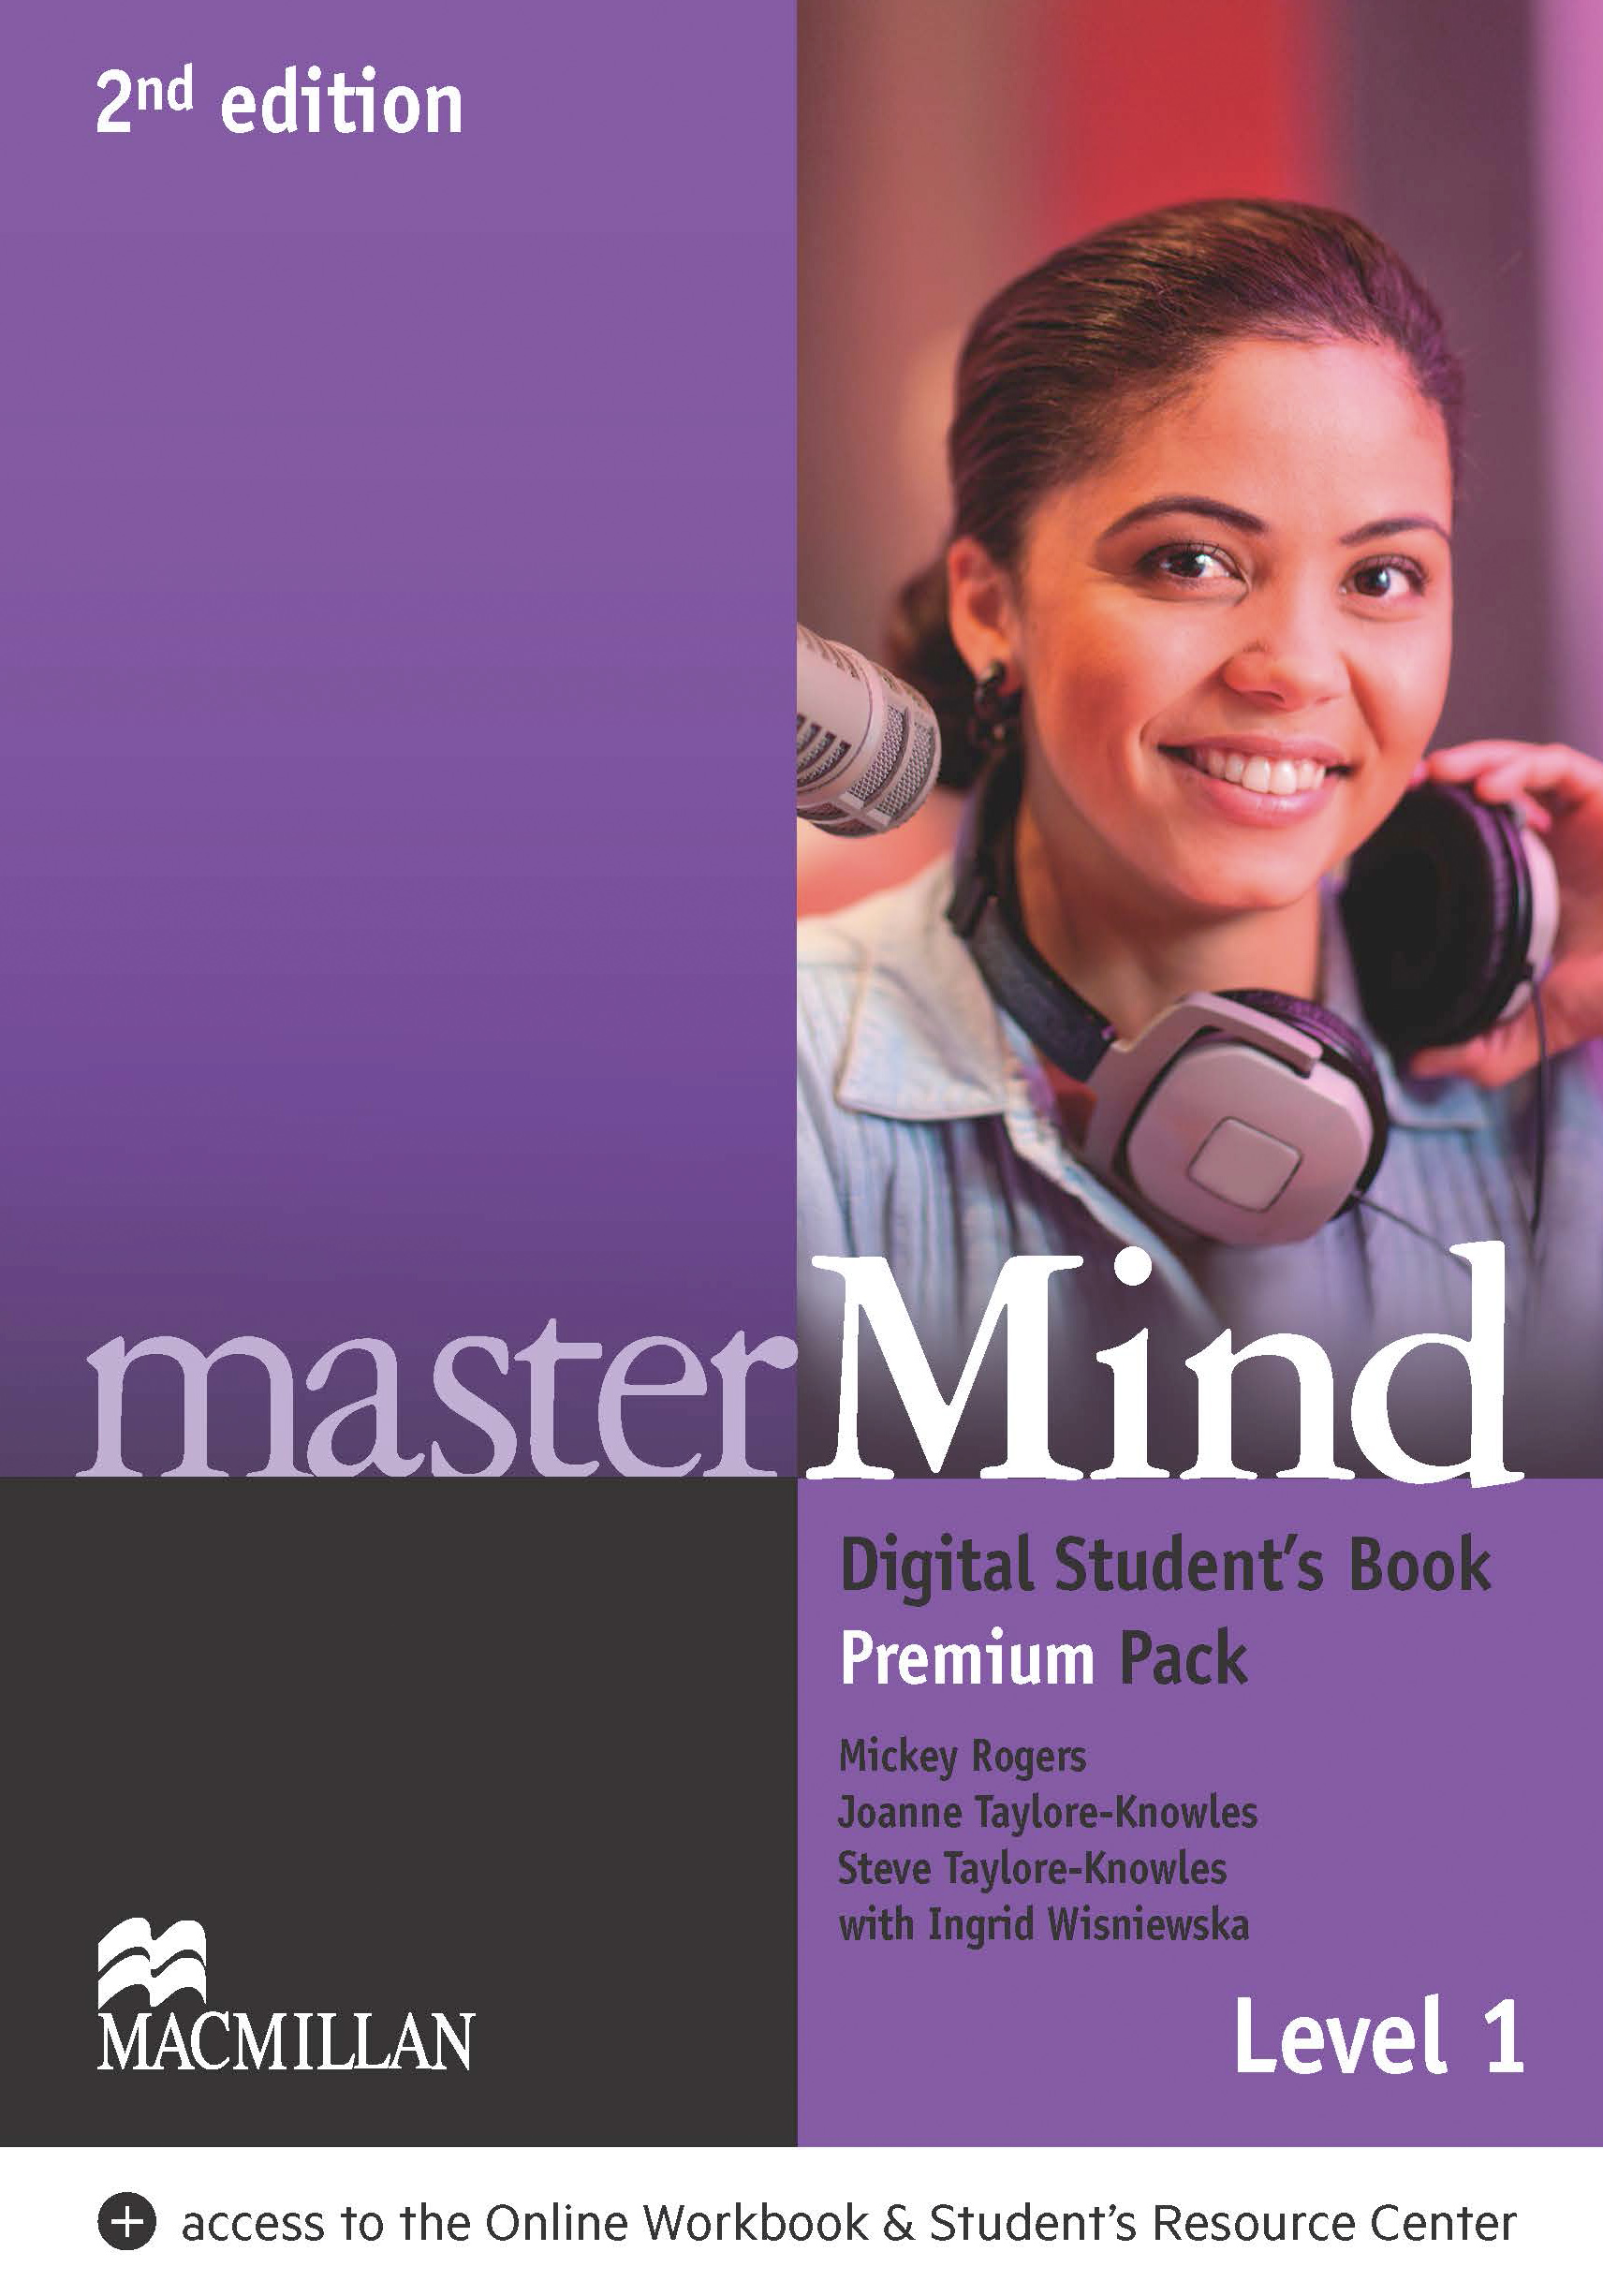 masterMind 2nd Edition Level 1 Digital Student